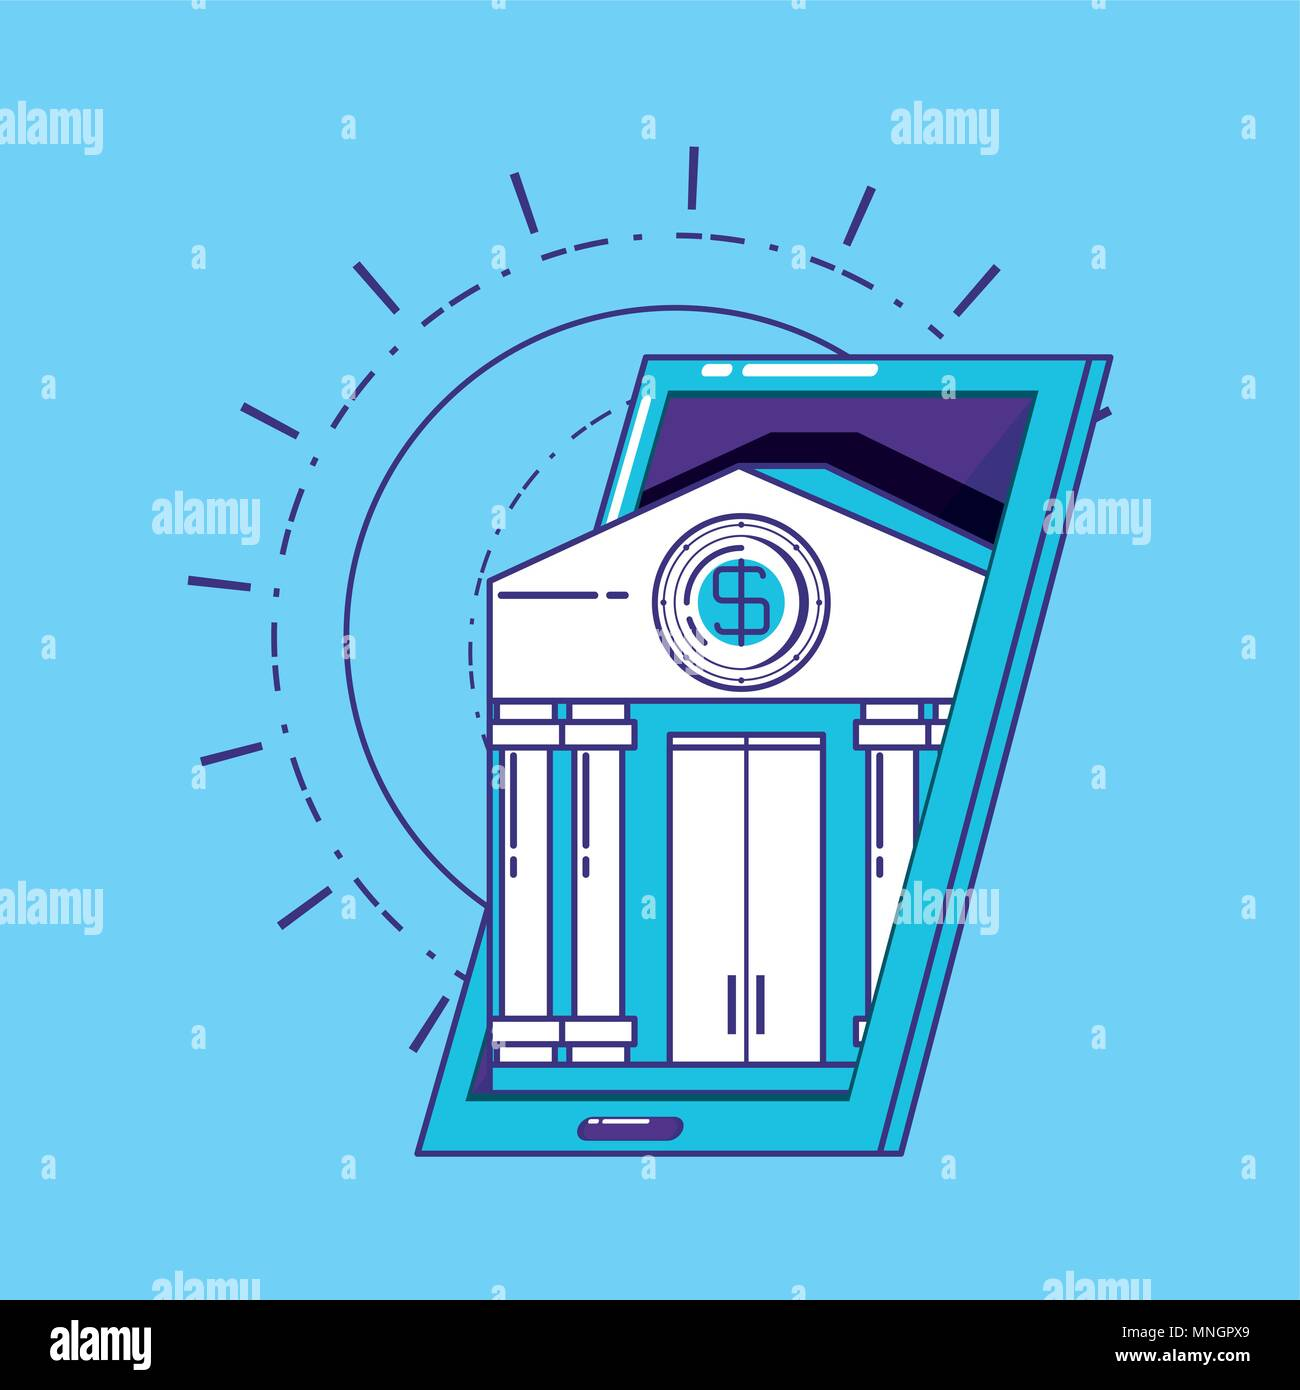 financial technology concept with smartphone with bank building over blue background, vector illustration - Stock Image